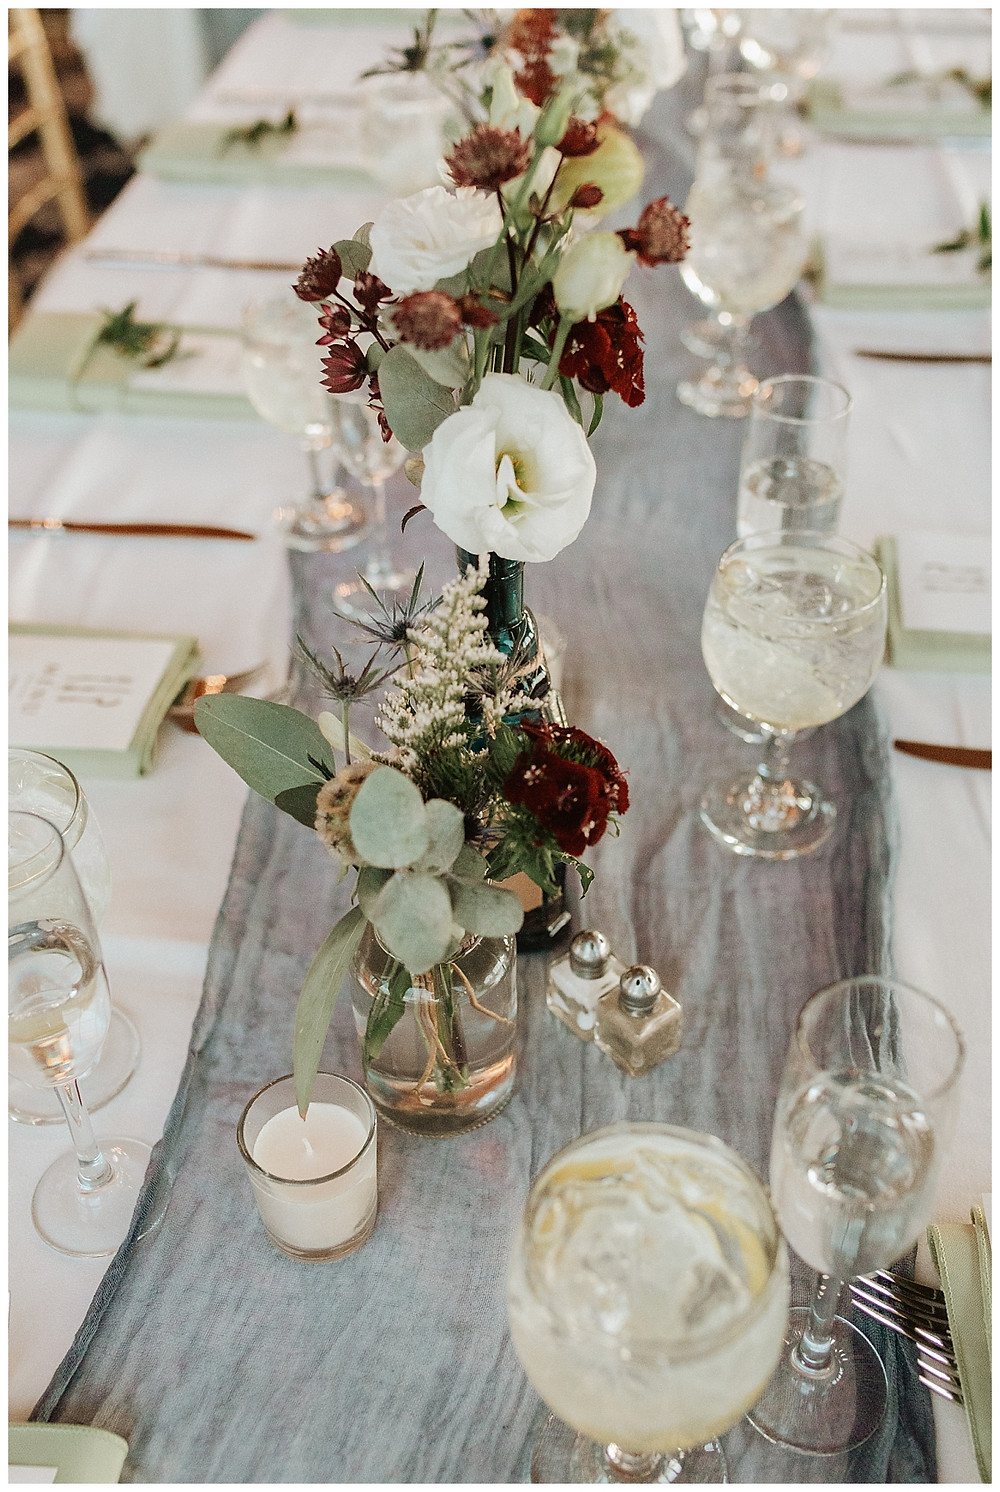 Coastal Inspired Table Settings with Colored Glasses